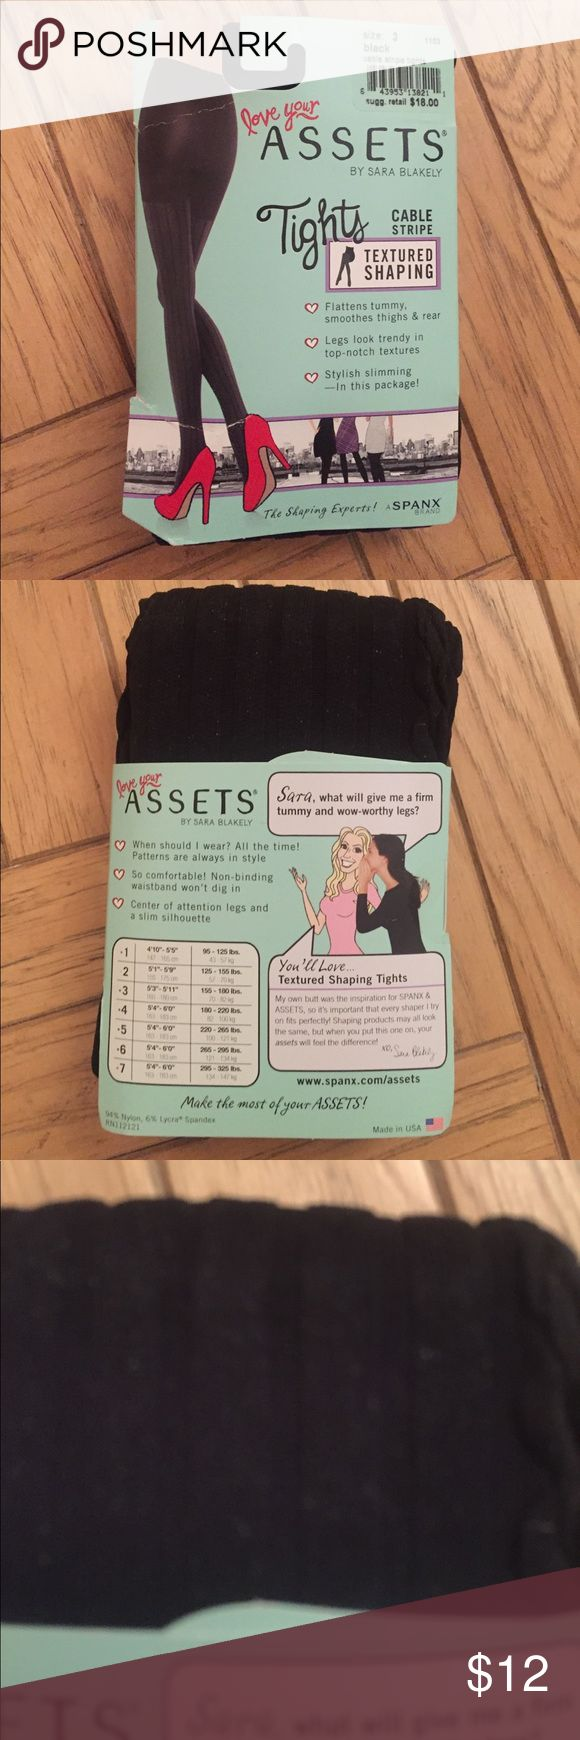 NWT Assets by Spanx textured tights NWT Assets by Spanx textured tights!! Cable stripe. Never worn. Perfect condition. Flattens tummy and stylish slimming! All offers considered and I bundle 🌸🌸 Assets By Spanx Accessories Hosiery & Socks